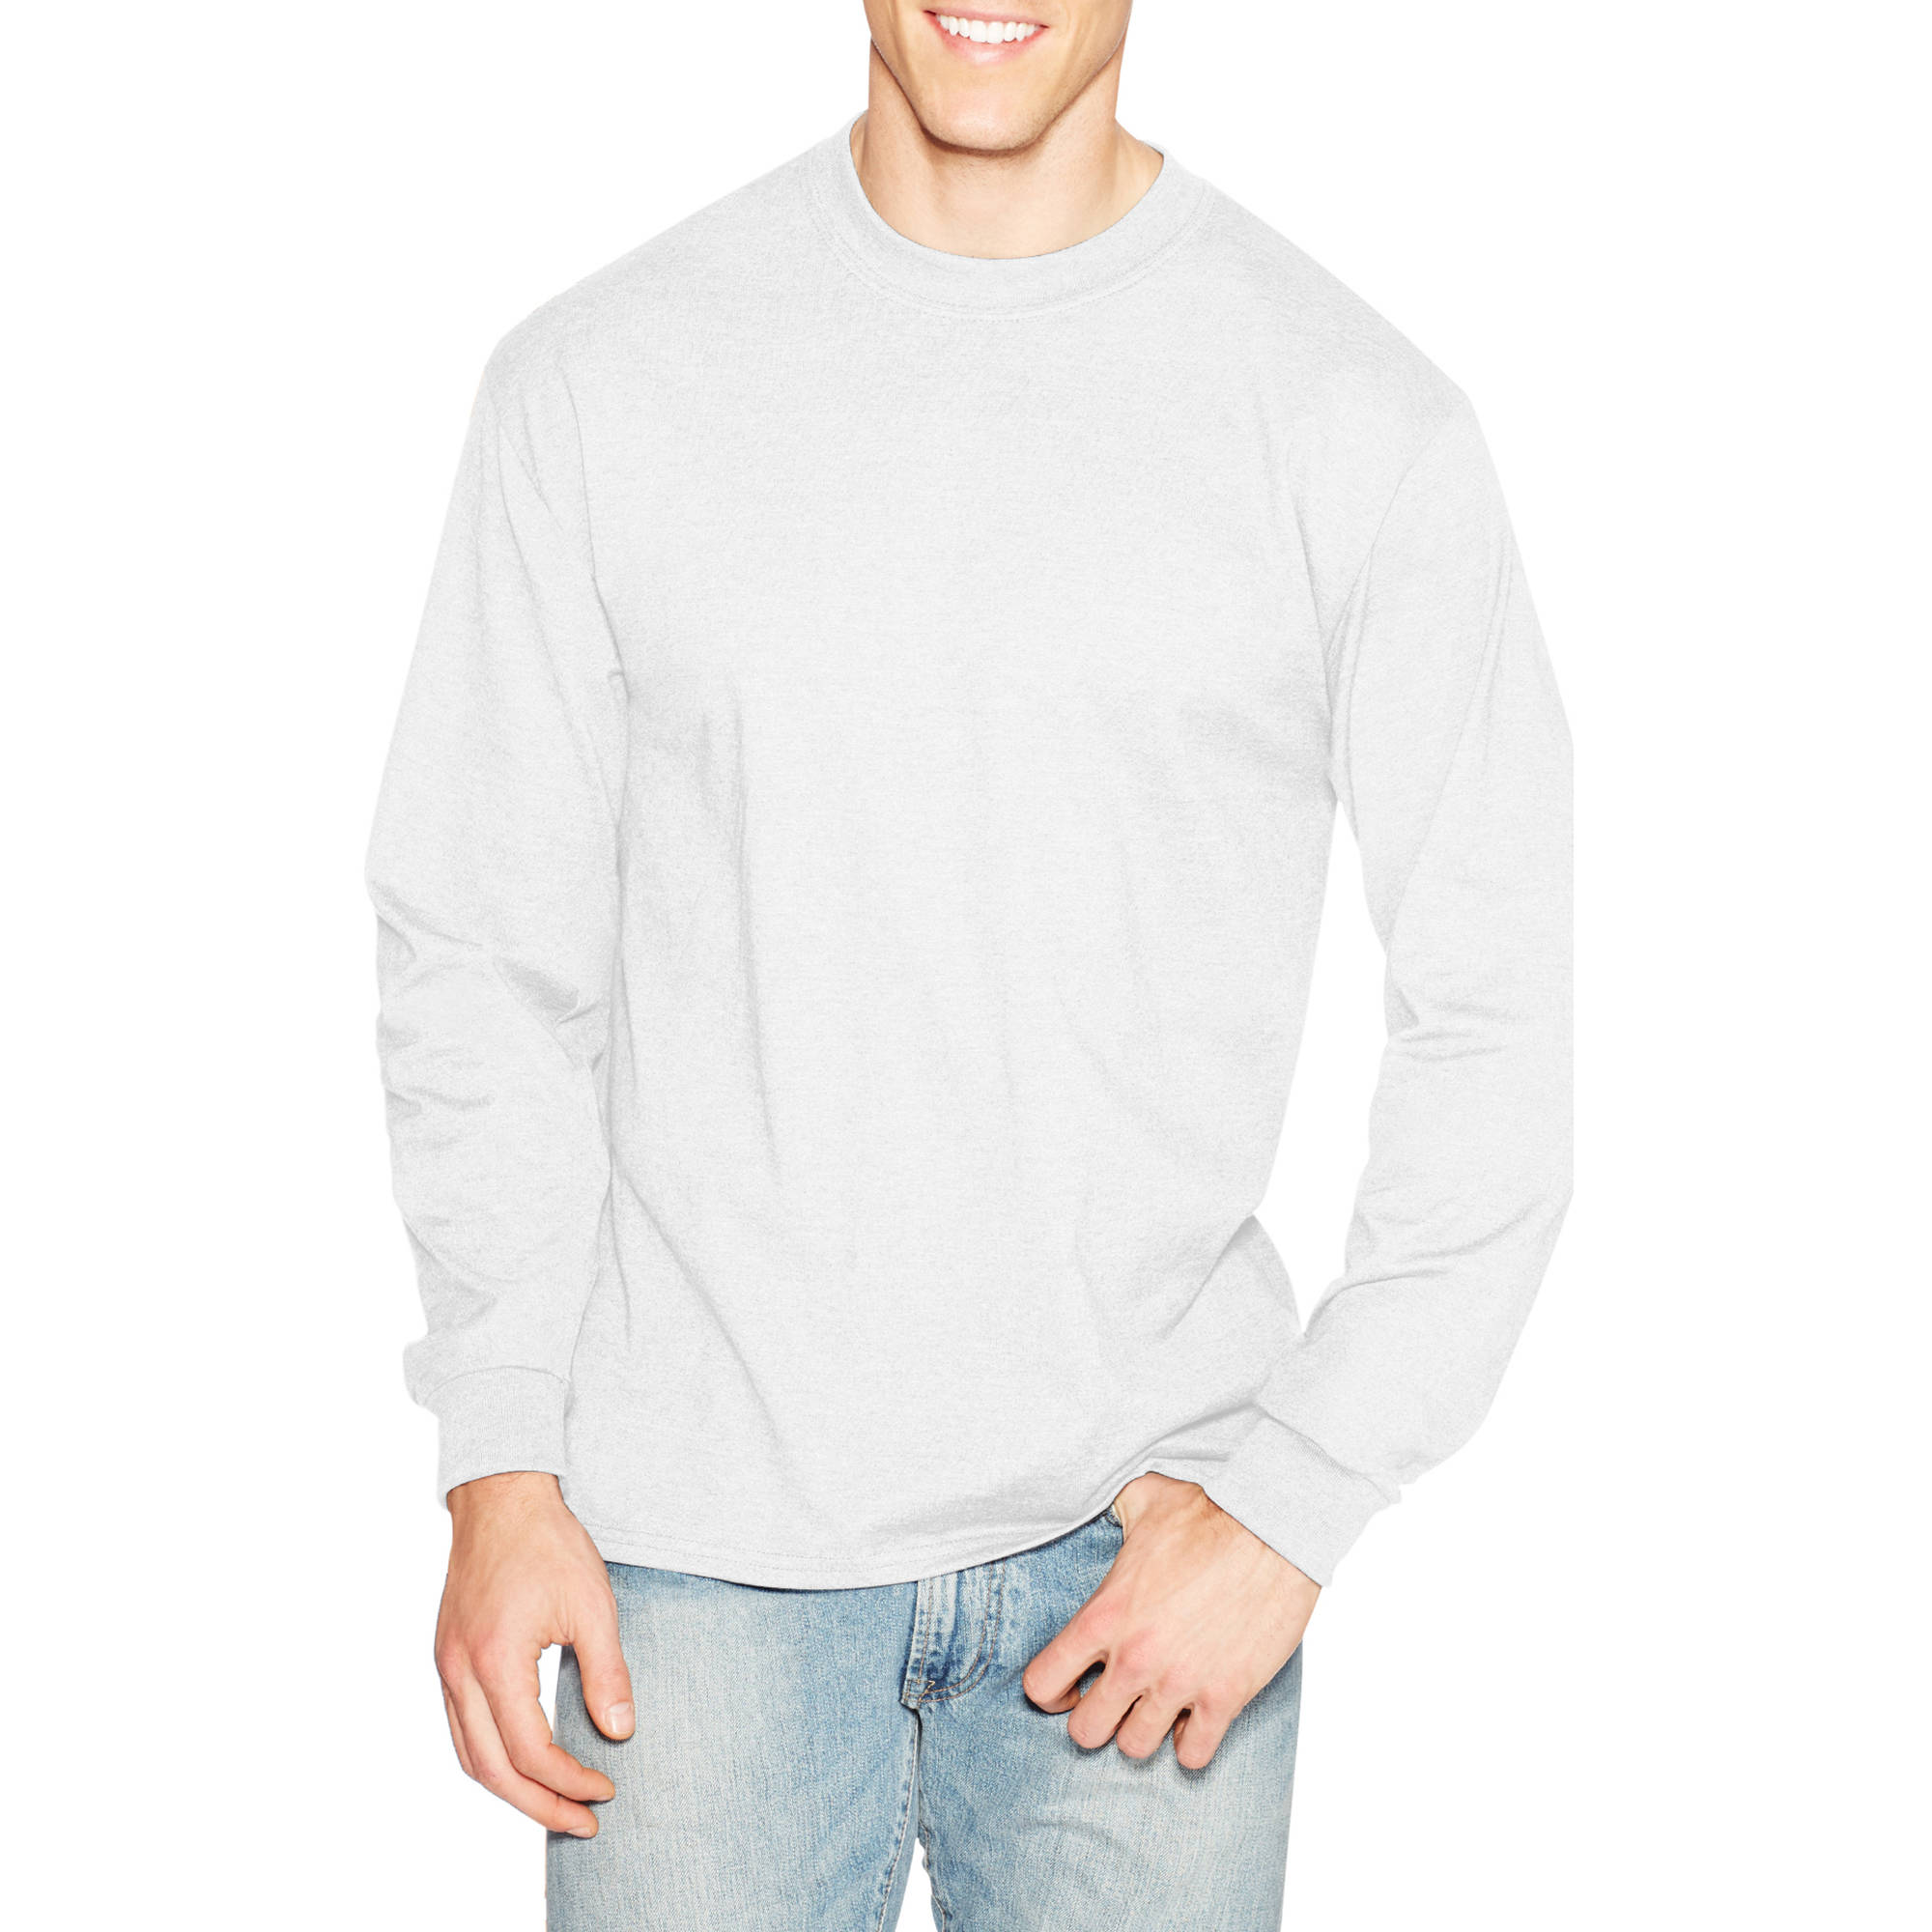 https://www.walmart.com/ip/Hanes-Men-s-Beefy-Long-Sleeve-T-shirt/36210894